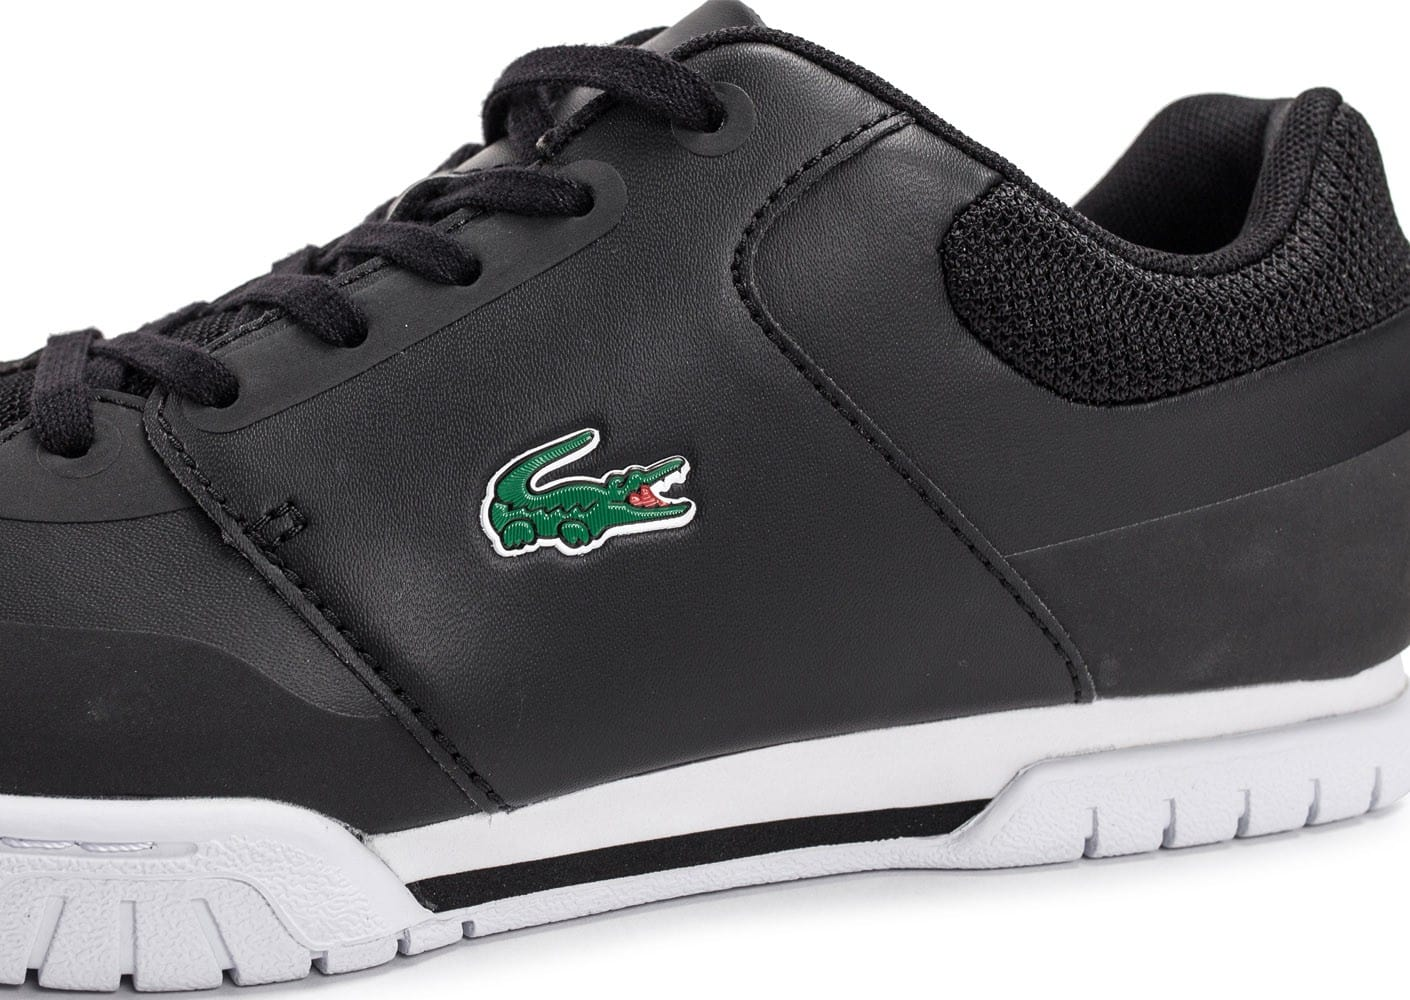 Lacoste Evo Chaussures Bleu Homme Noire Indiana Baskets Chausport 67gYbfy